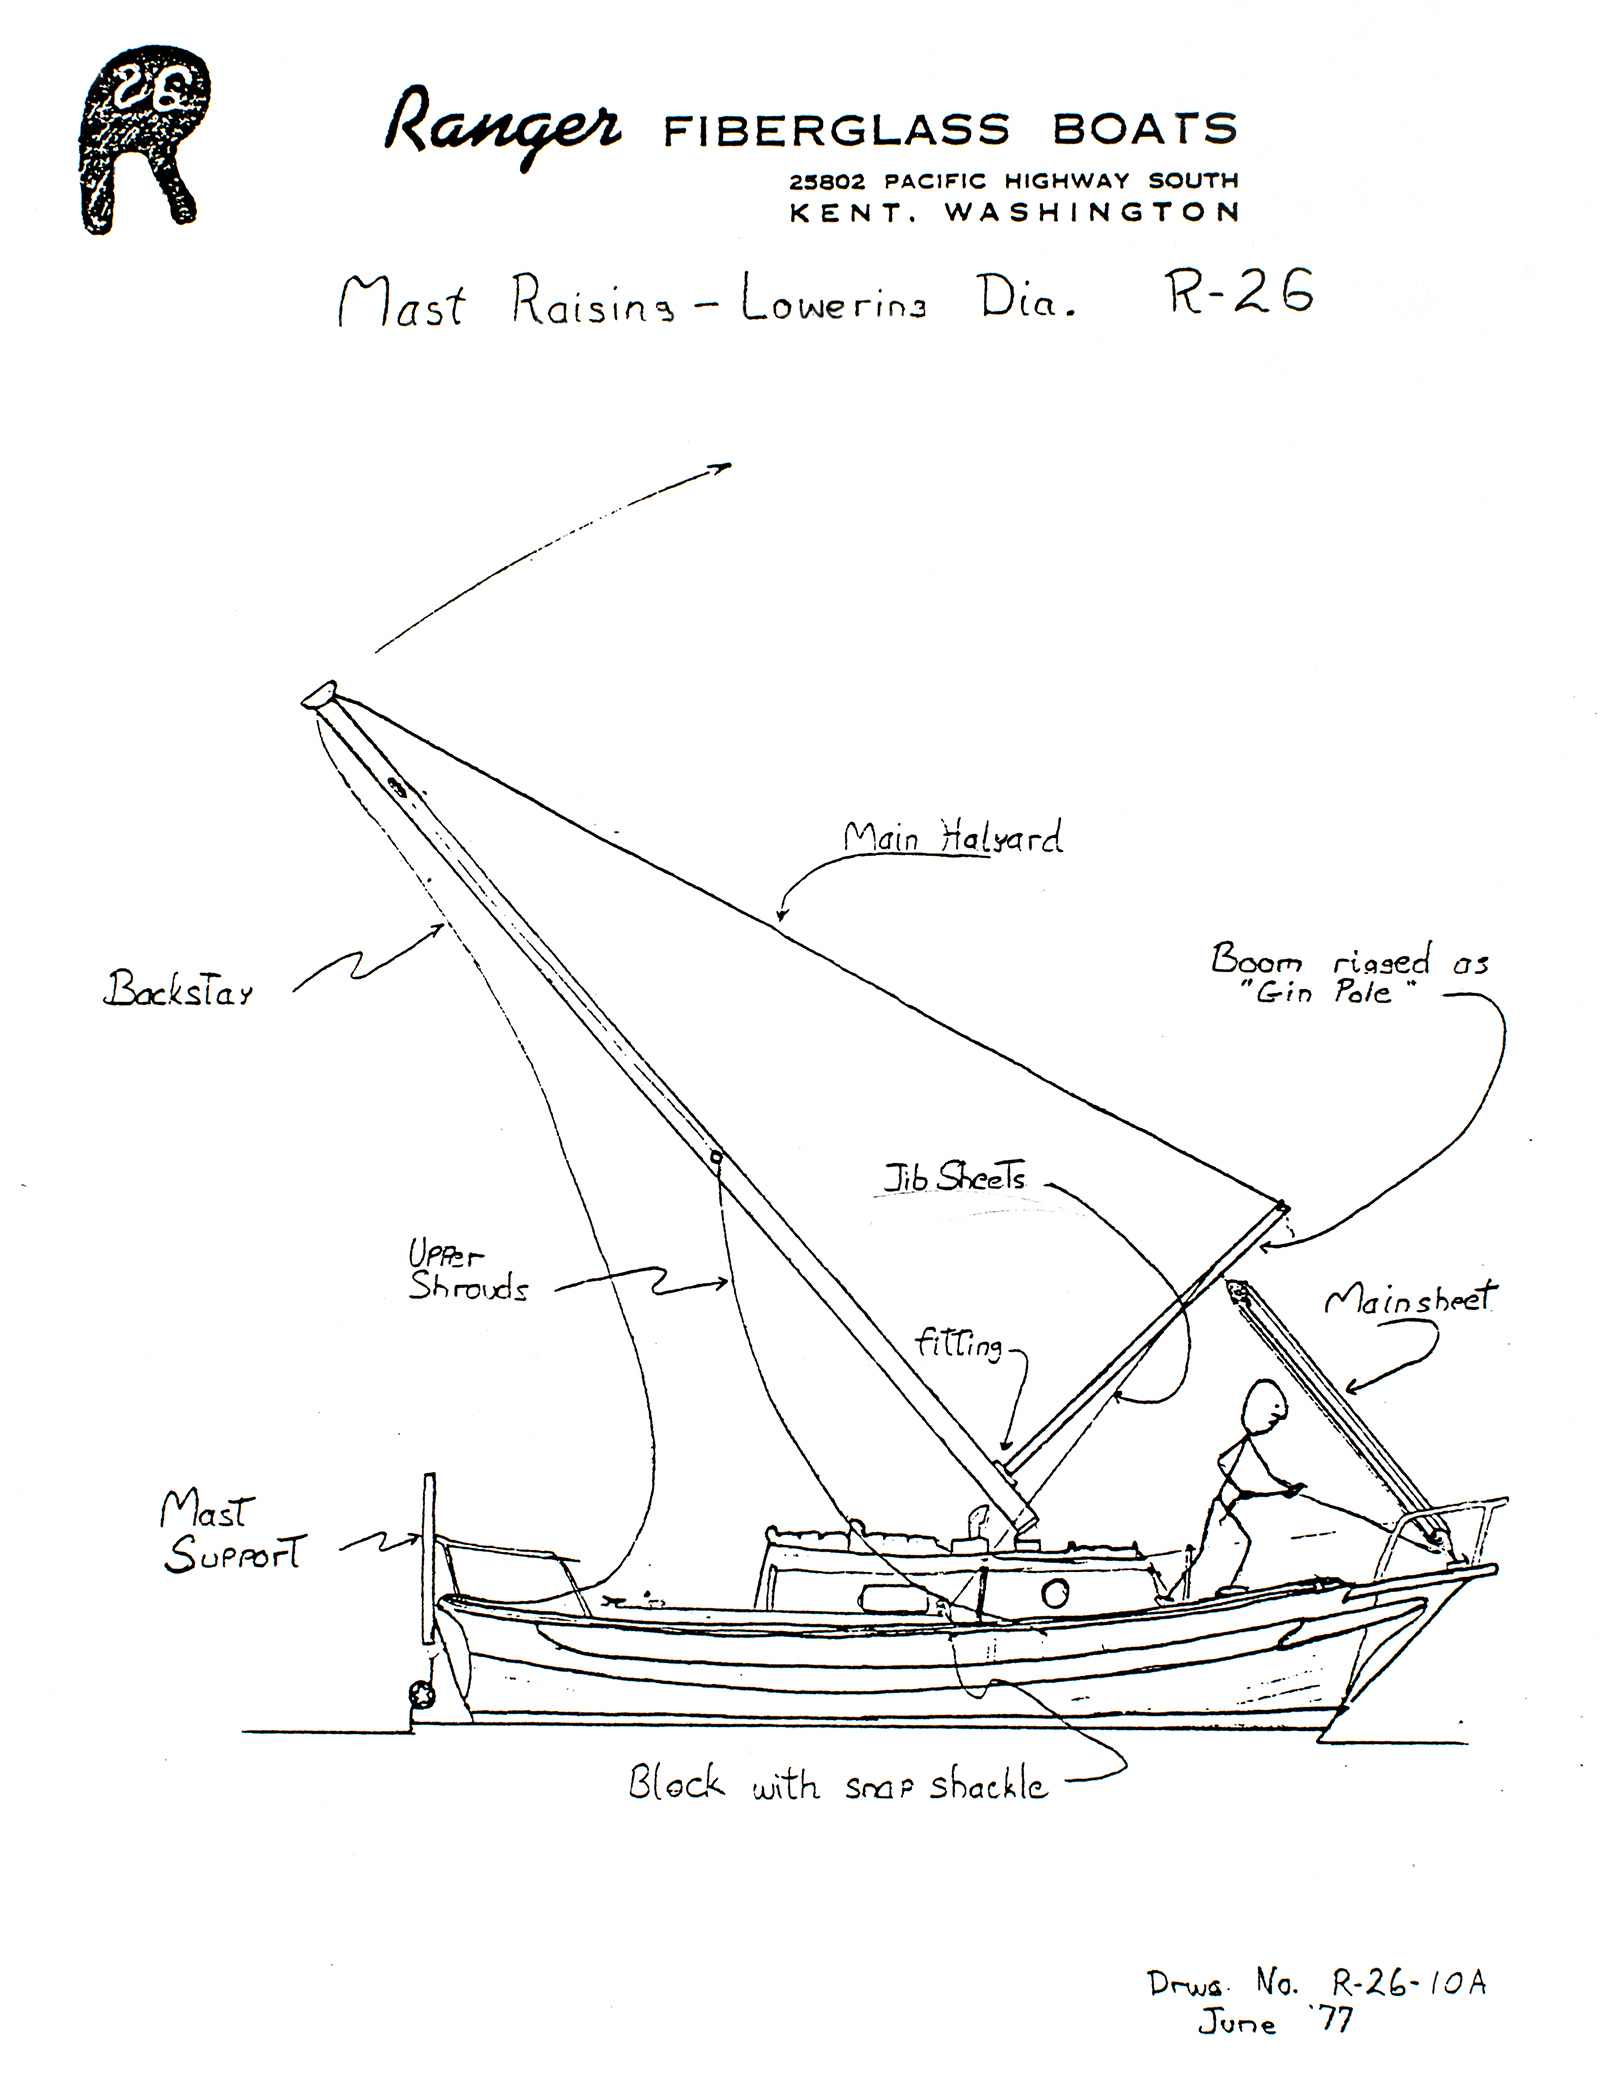 medium resolution of mast raising lowering diagram for the ranger 26 sailboat kent washington